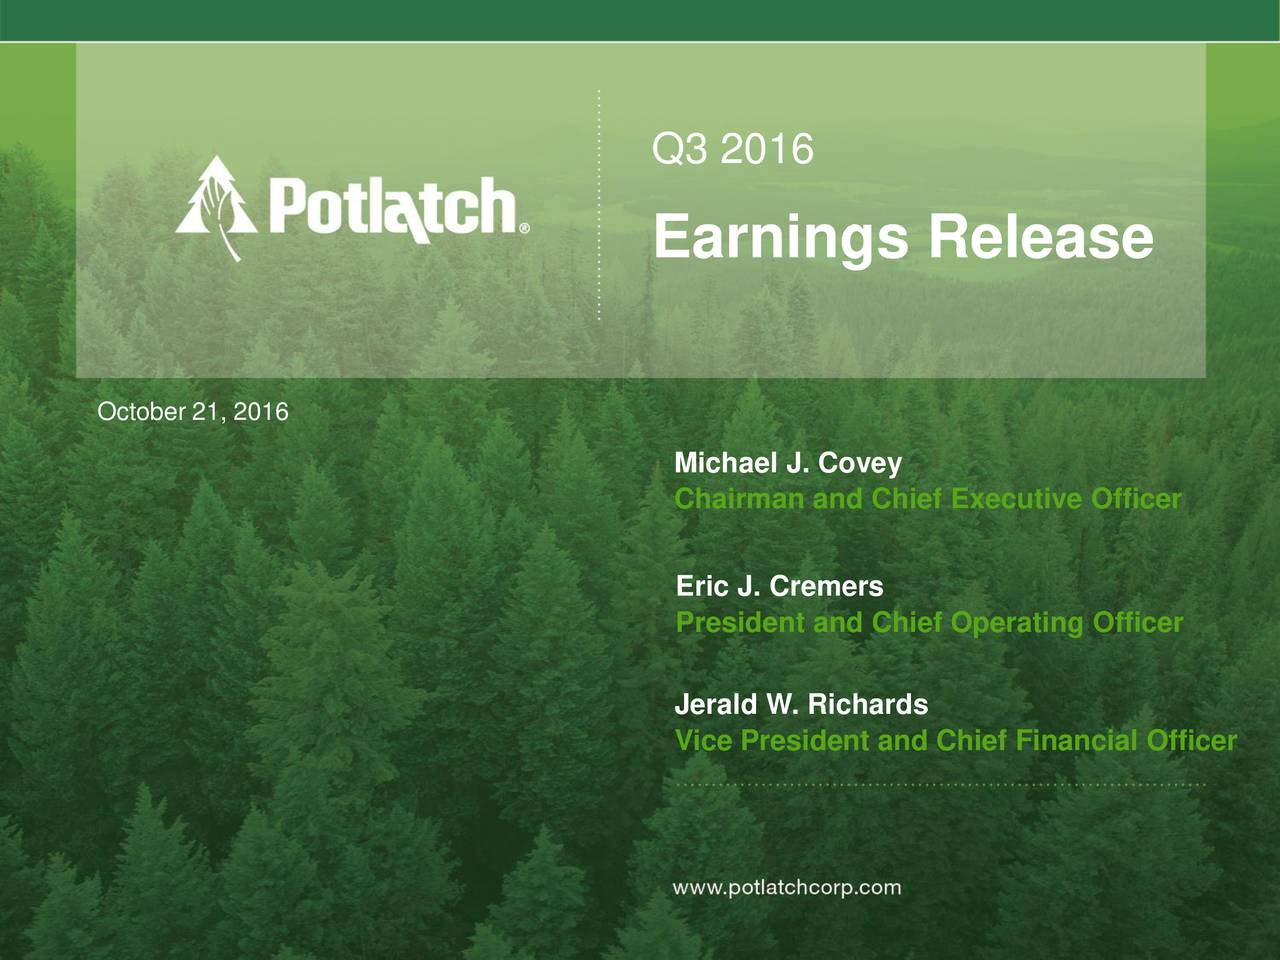 Earnings Release October 21, 2016 Michael J. Covey Chairman and Chief Executive Officer Eric J. Cremers President and Chief Operating Officer Jerald W. Richards Vice President and Chief Financial Officer